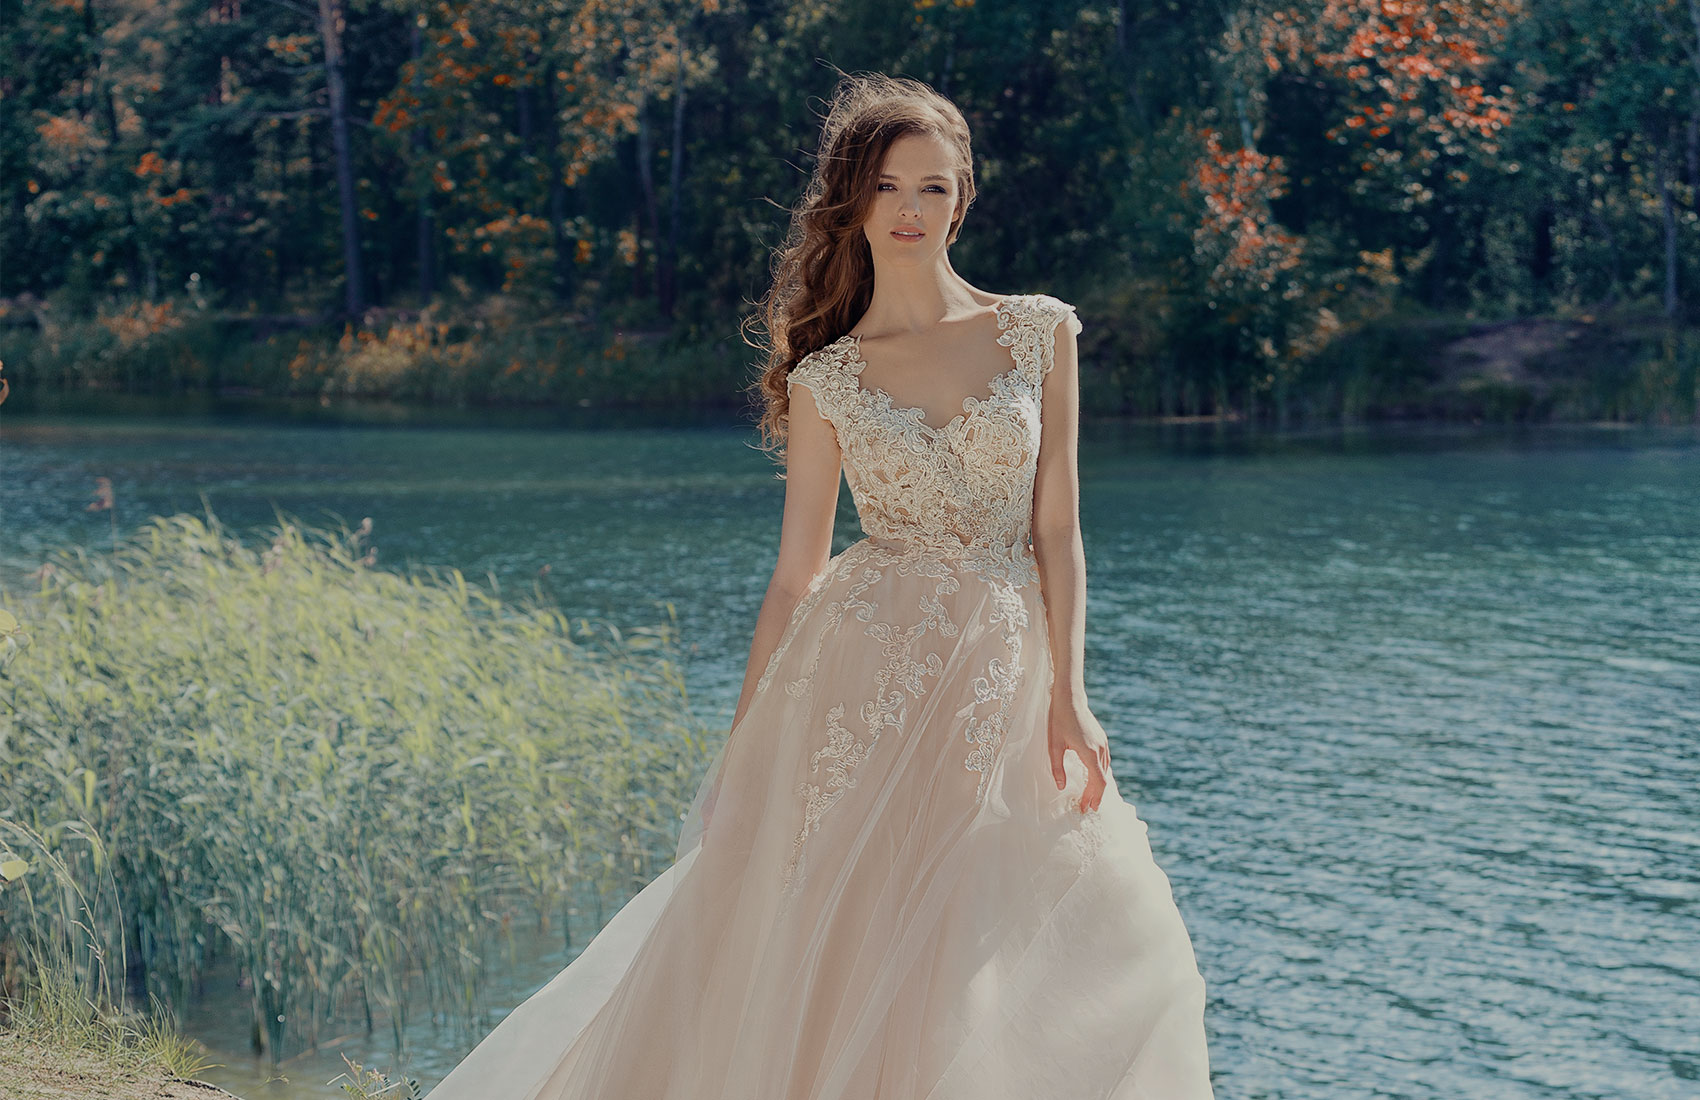 Wedding Dresses & Evening Gowns Store in Toronto - Papilio Boutique